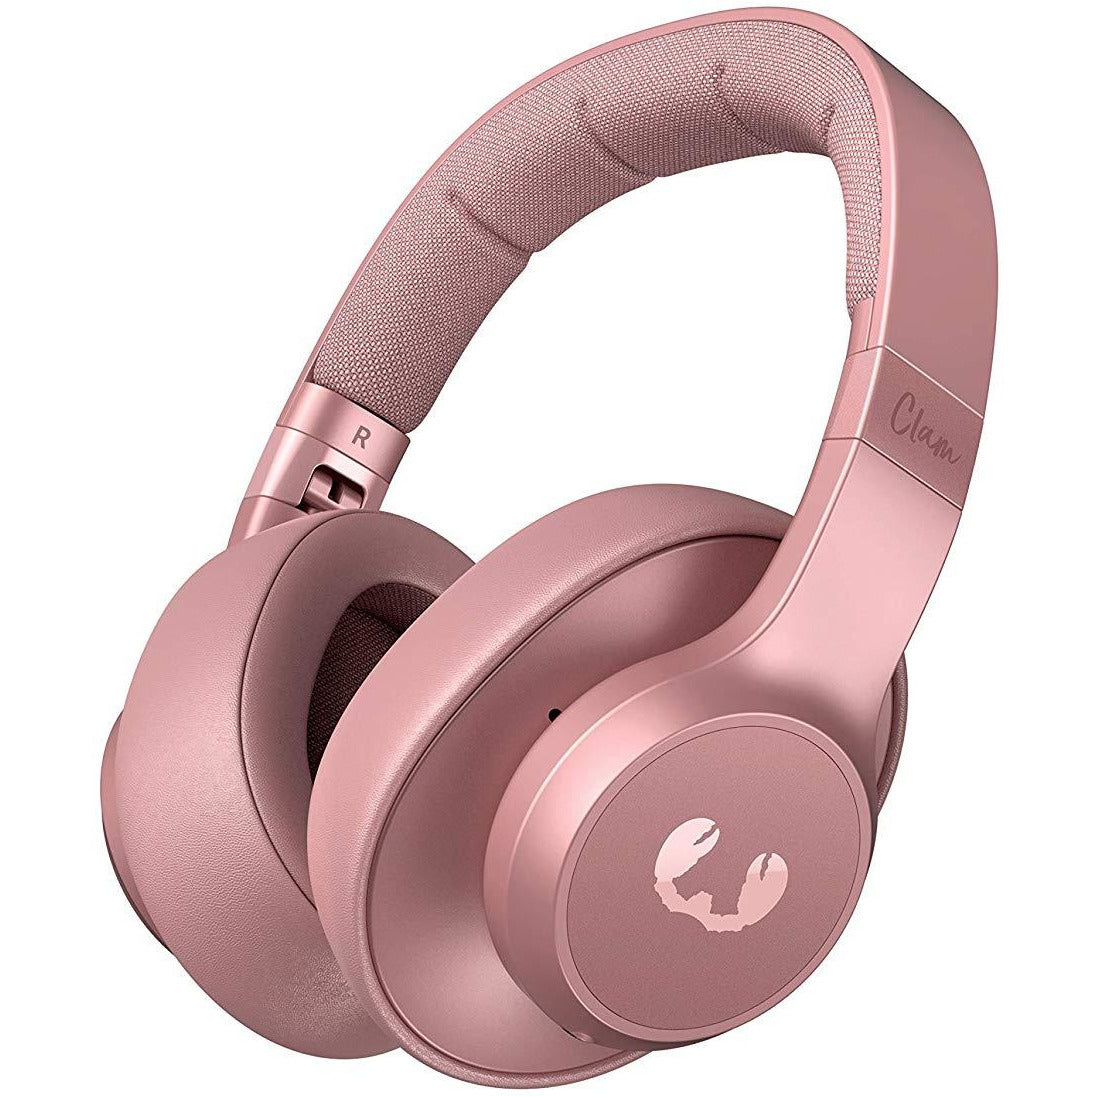 Fresh 'n' Rebel Headphones CLAM ANC Dusty Pink [Accessories]